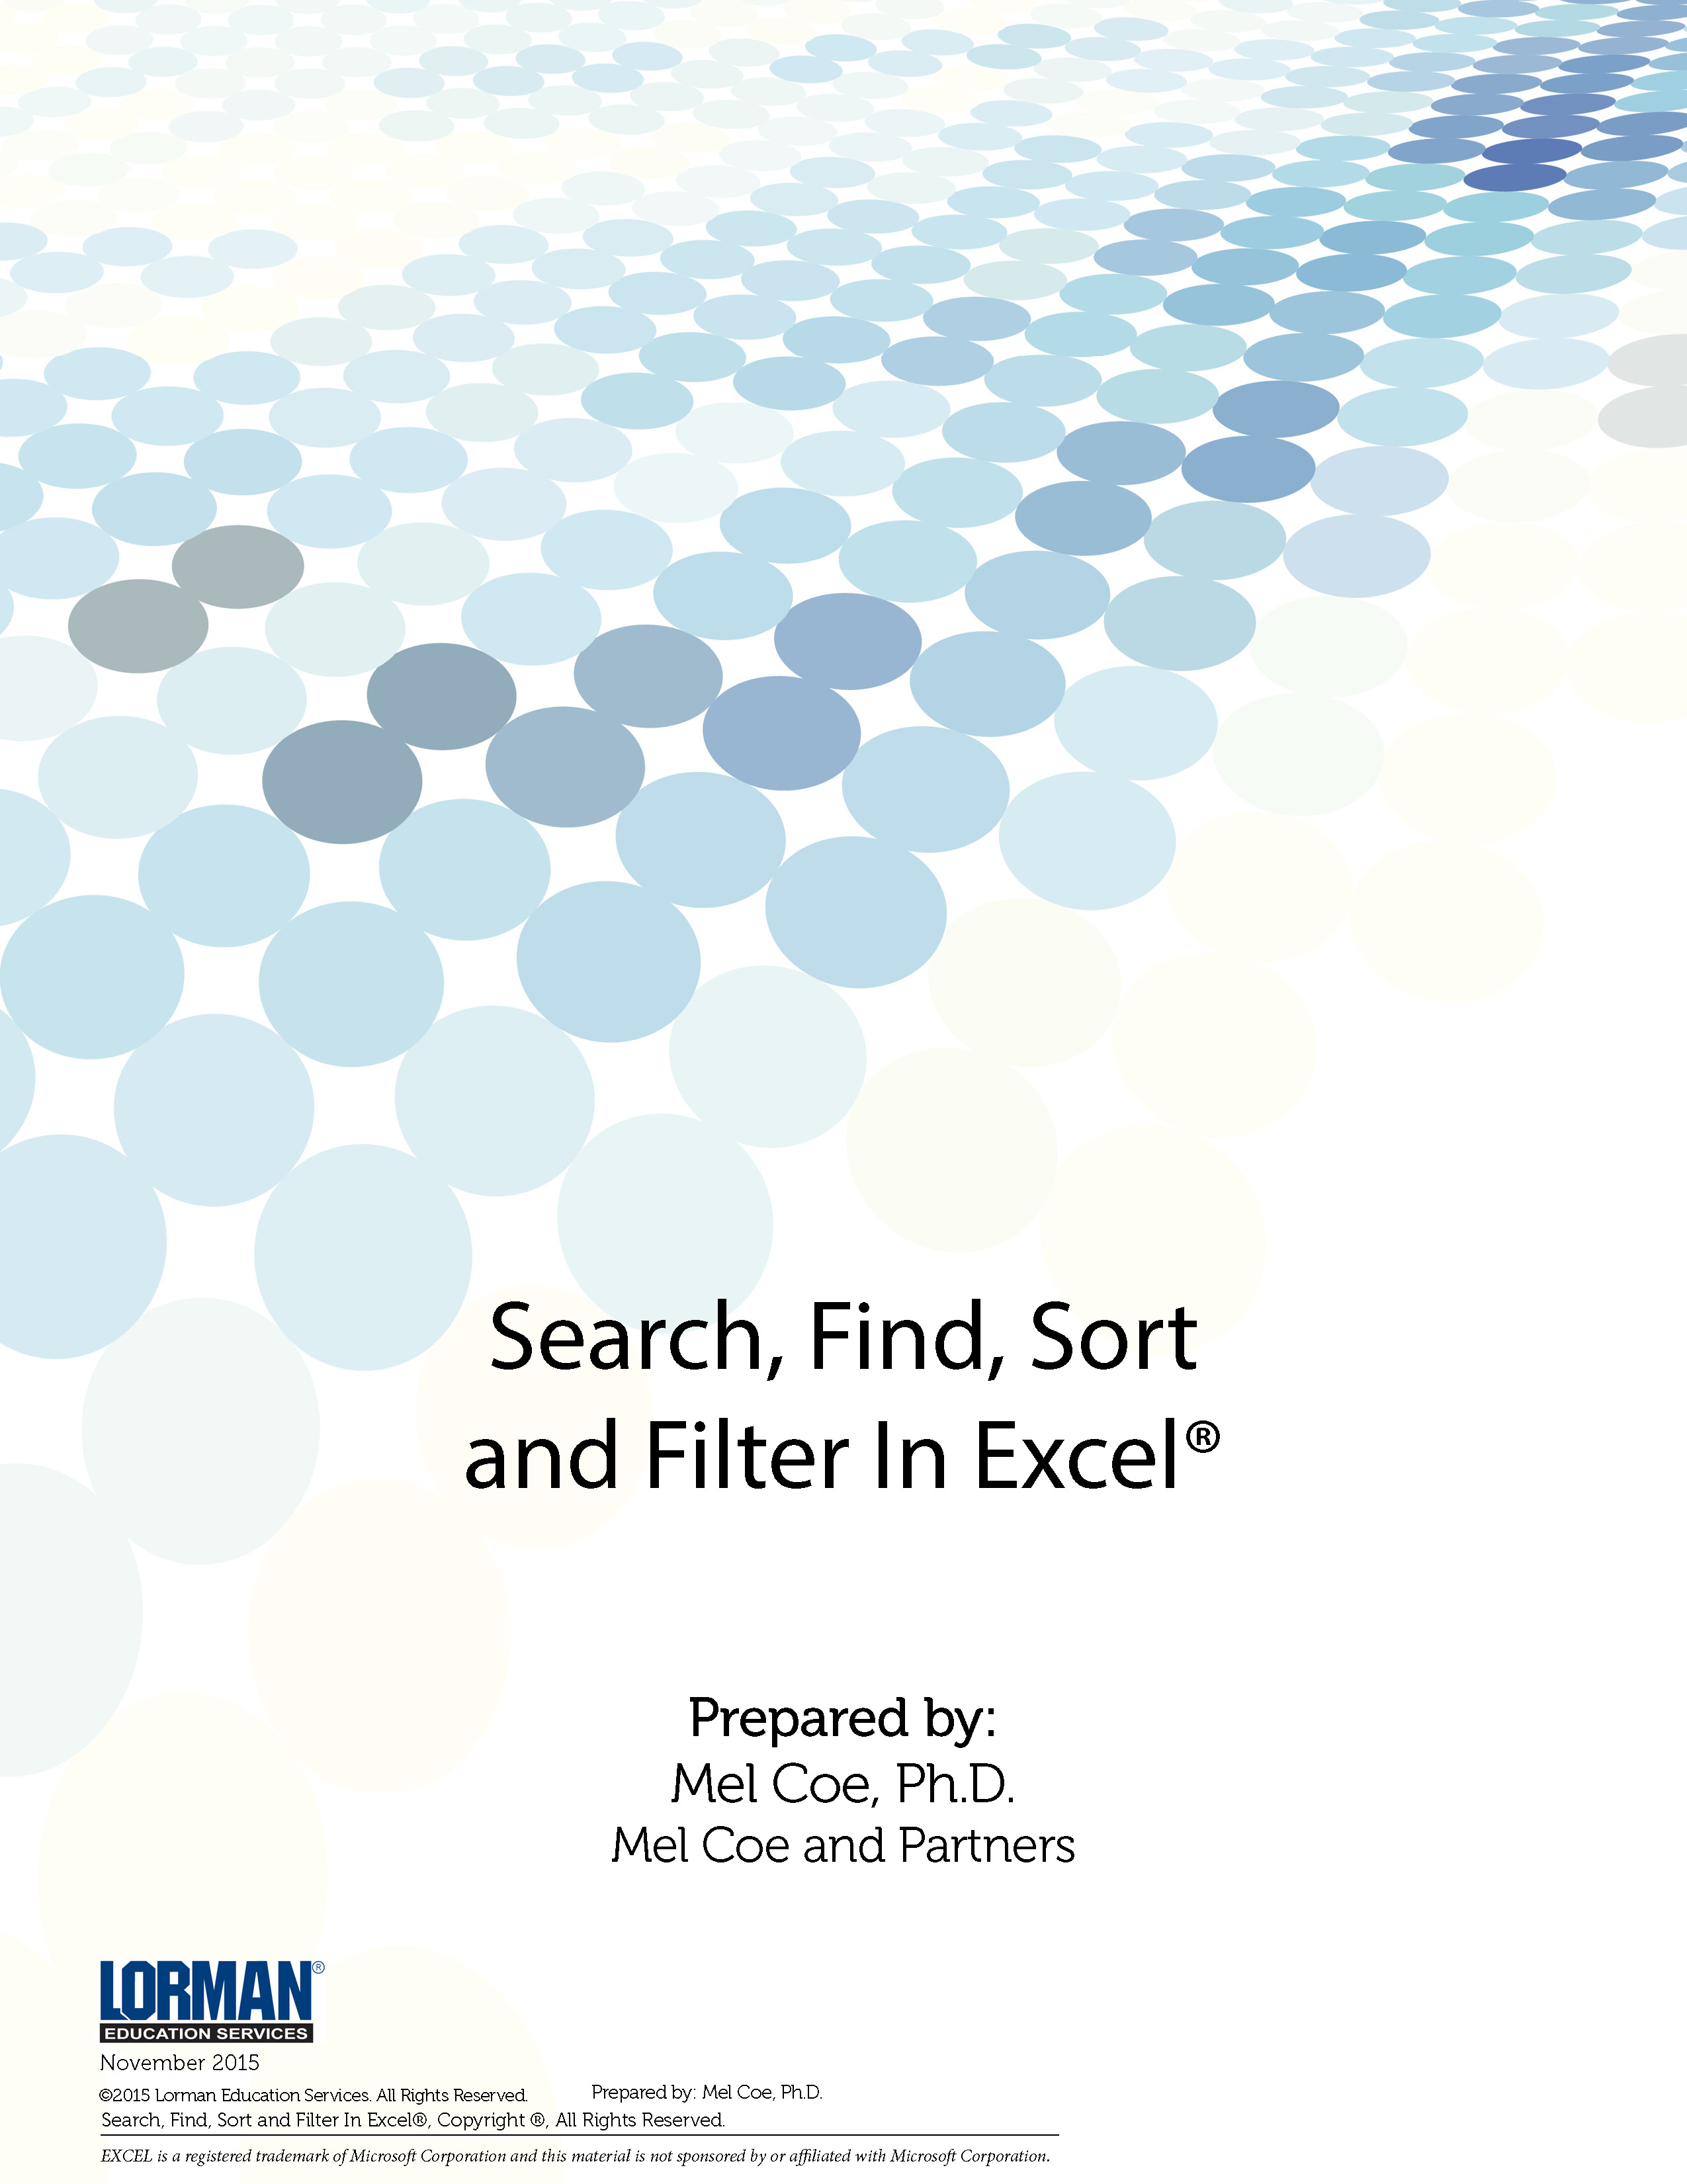 Search, Find, Sort and Filter In Excel